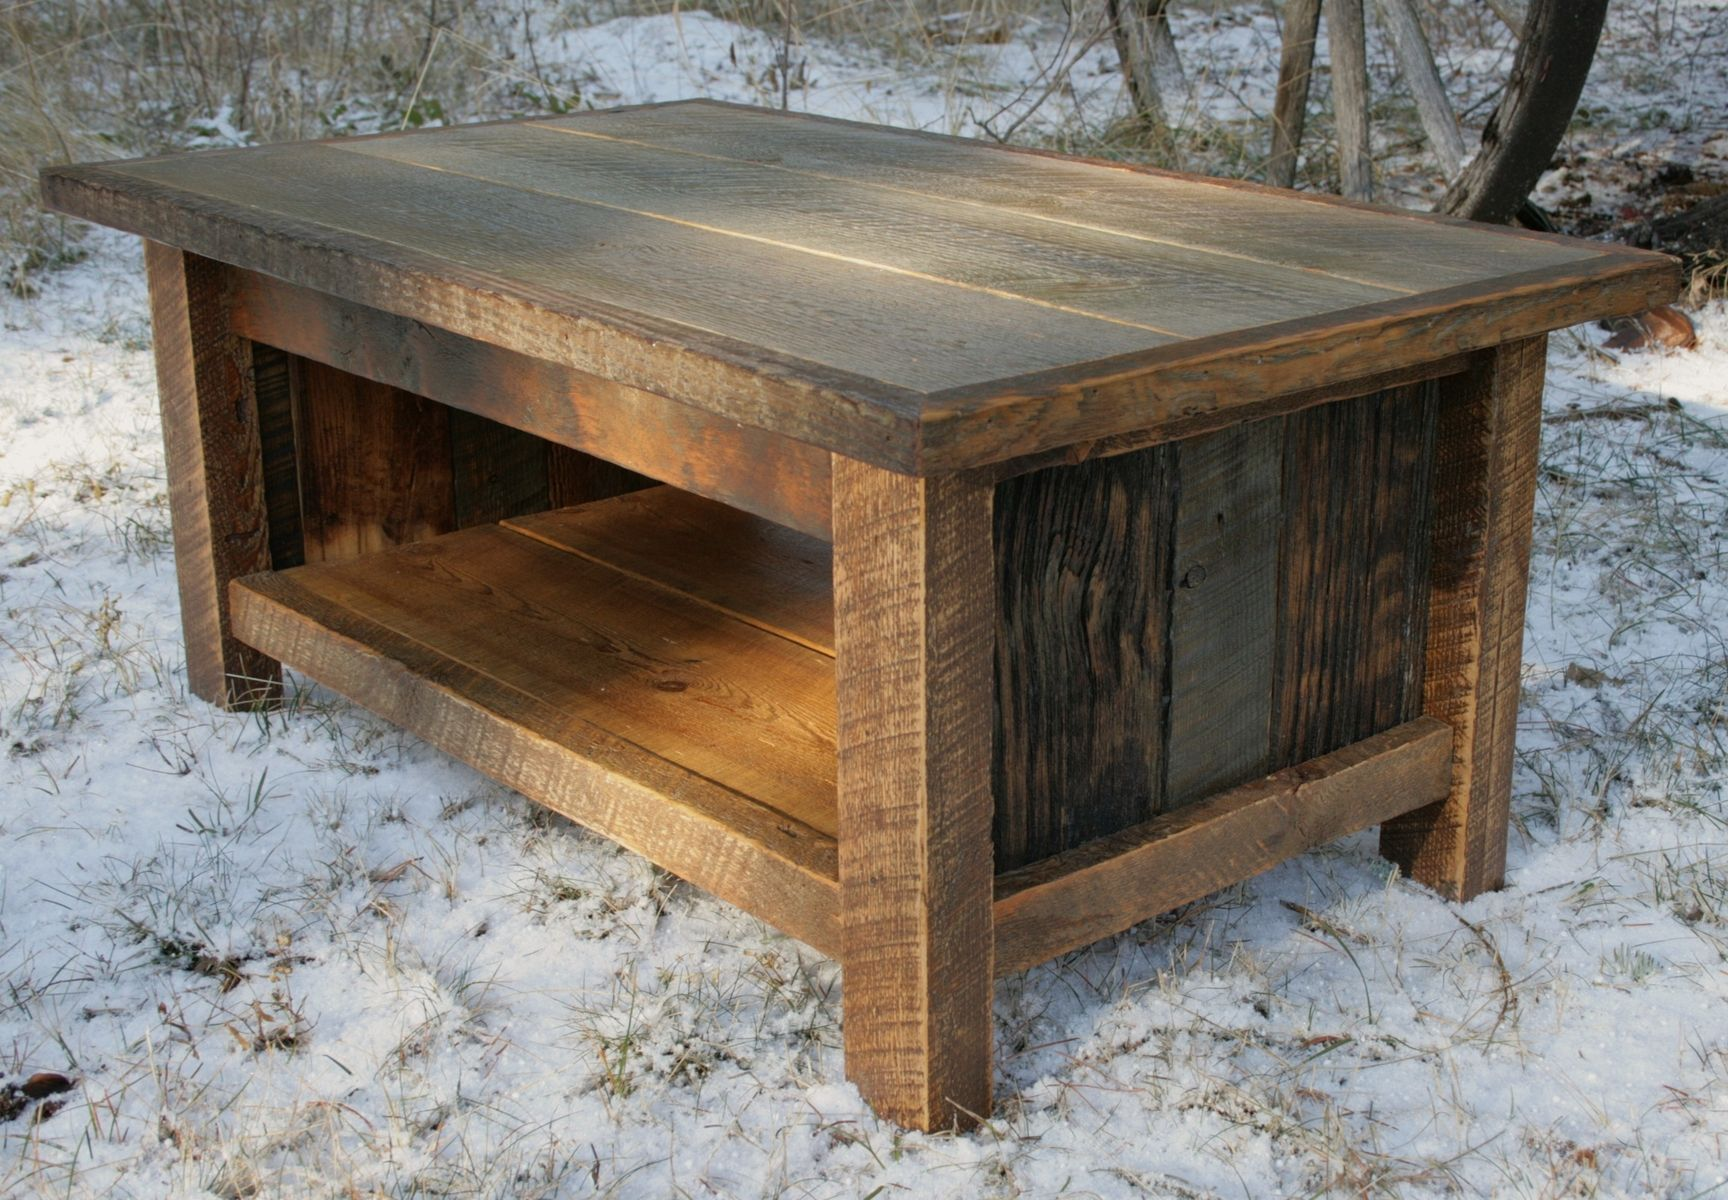 Hand crafted rustic reclaimed coffee table by echo peak design Unique rustic coffee tables